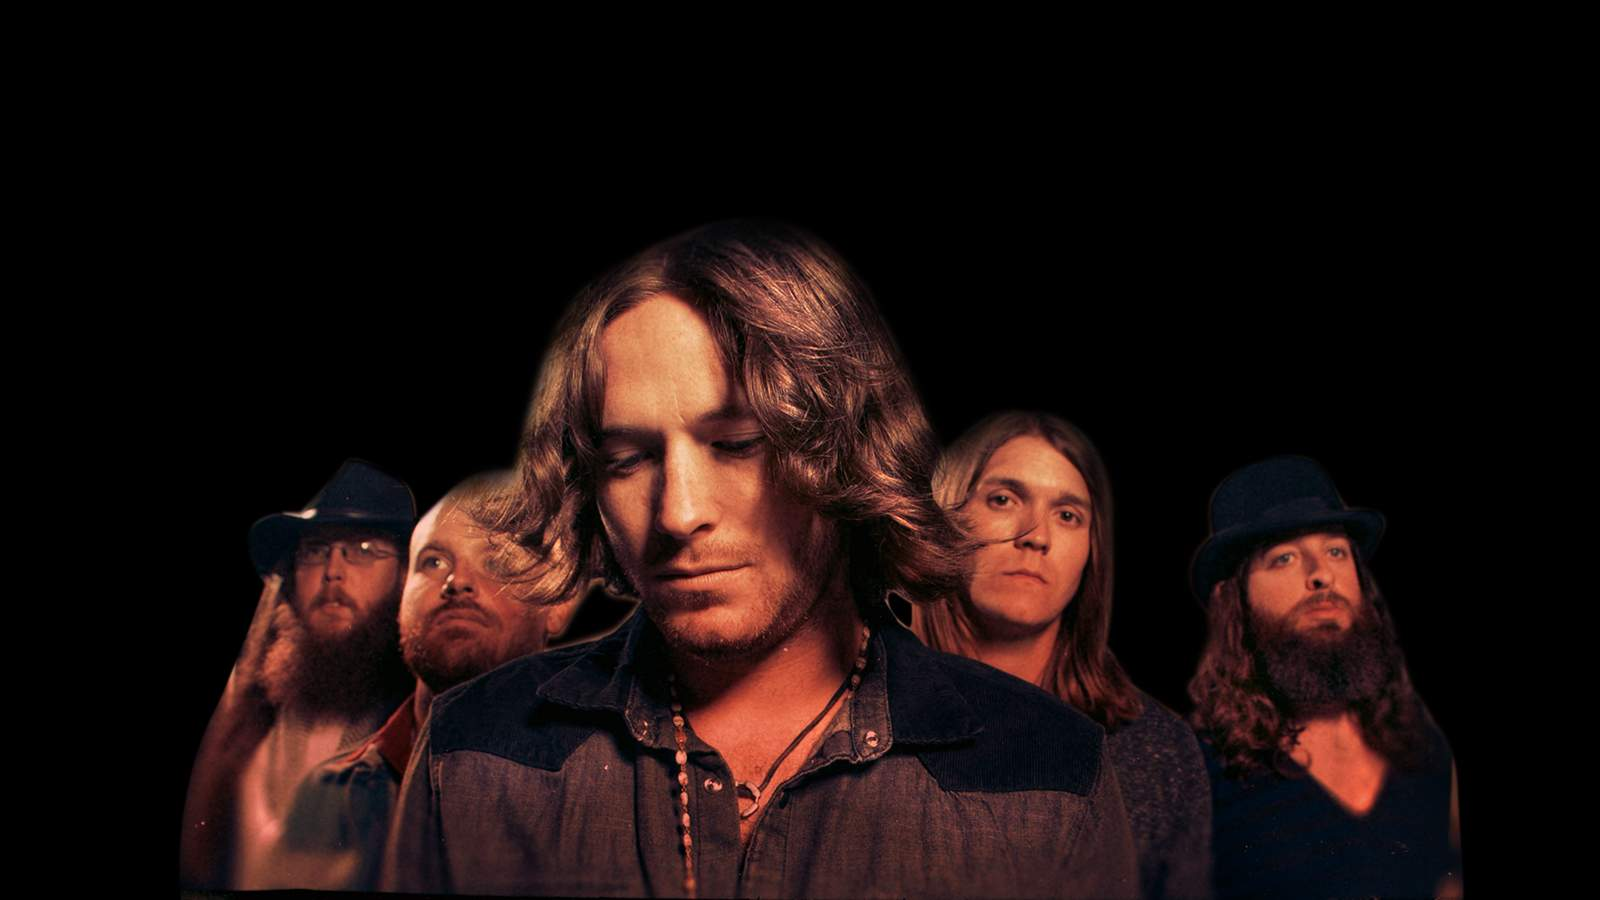 Whiskey Myers (Rescheduled from 4/24/2020, 6/18/2020, 10/15/2020)